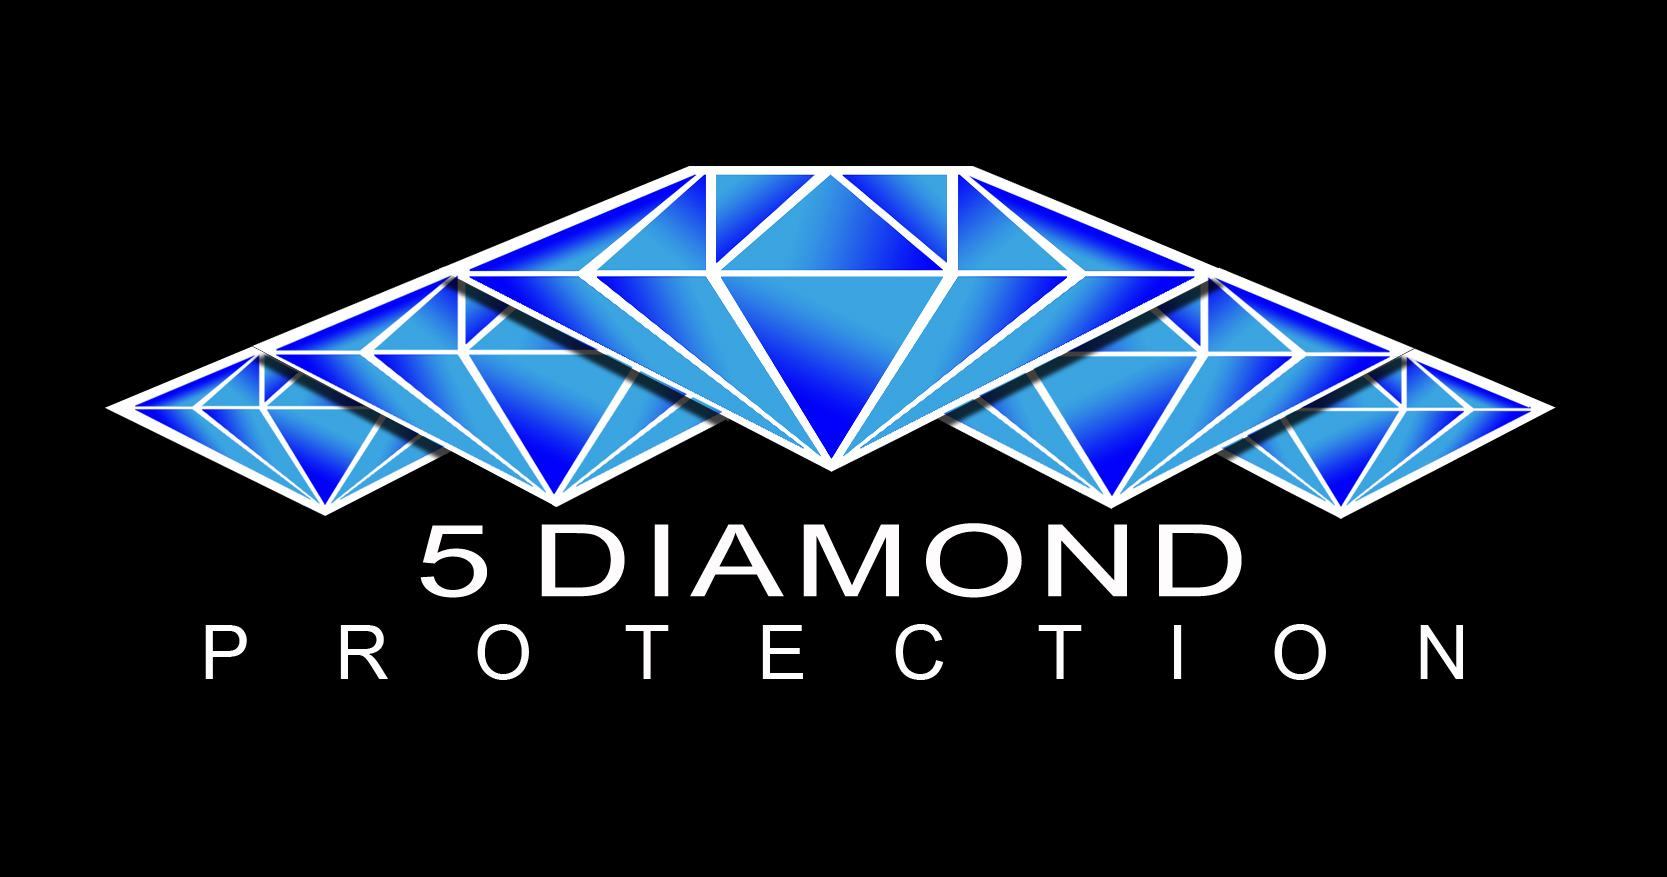 notyced 5 diamond protection. Black Bedroom Furniture Sets. Home Design Ideas